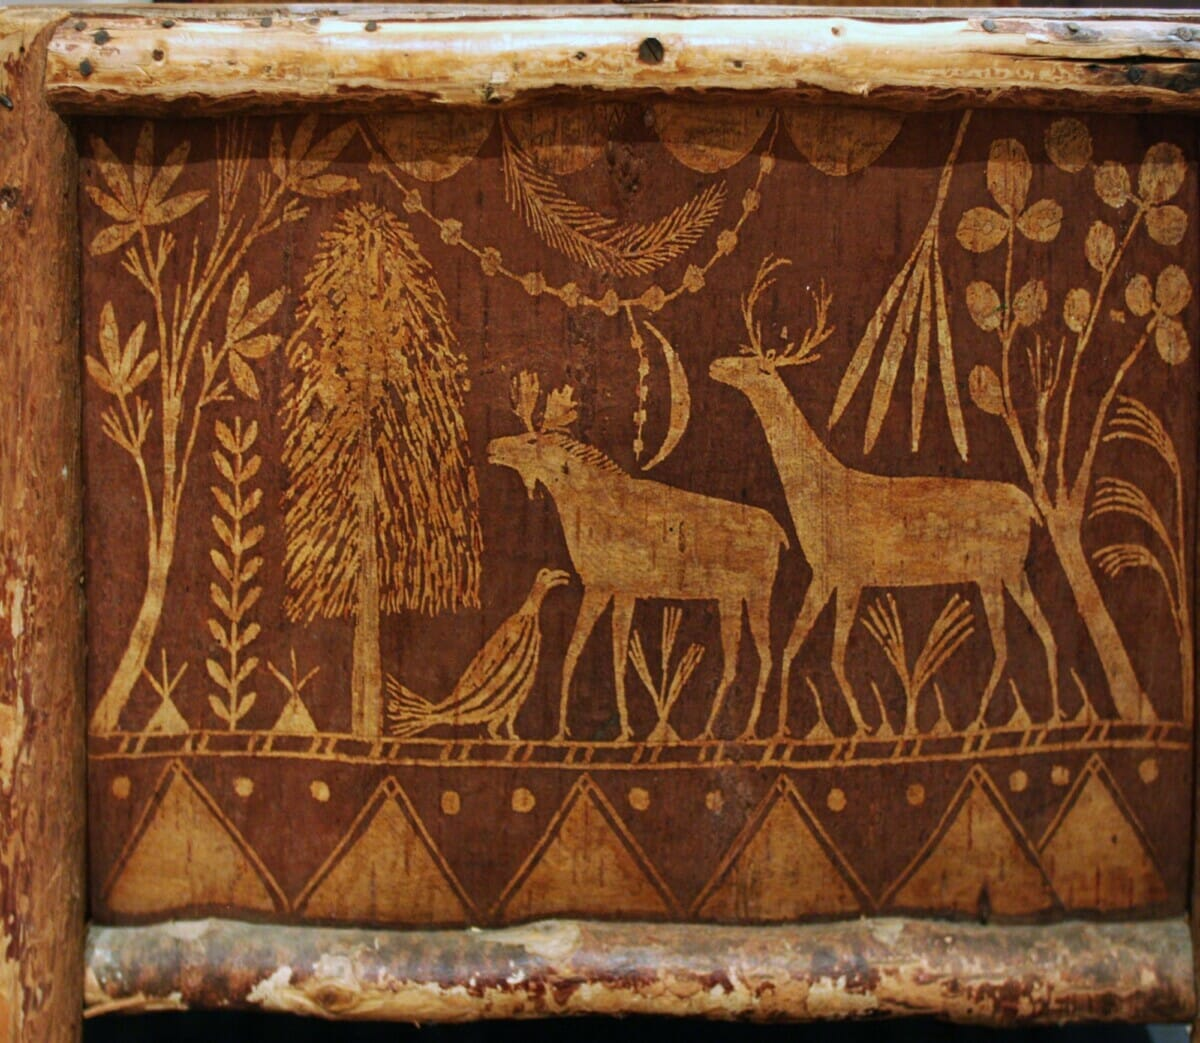 rustic carving of plants and animals